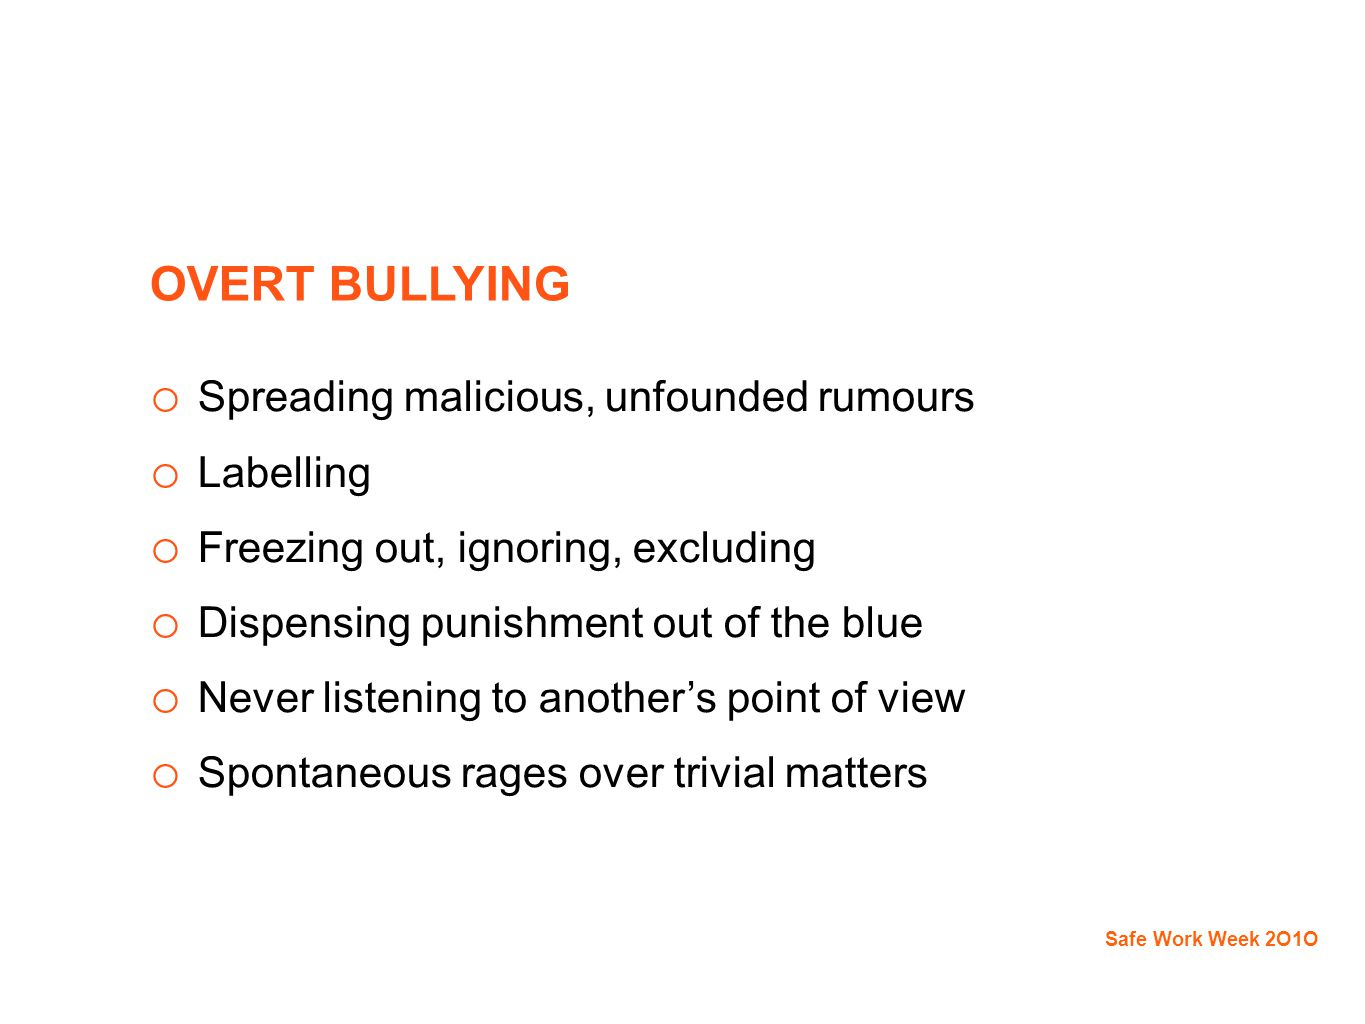 OVERT BULLYING o Spreading malicious, unfounded rumours o Labelling o Freezing out, ignoring, excluding o Dispensing punishment out of the blue o Never listening to another's point of view o Spontaneous rages over trivial matters Safe Work Week 2O1O